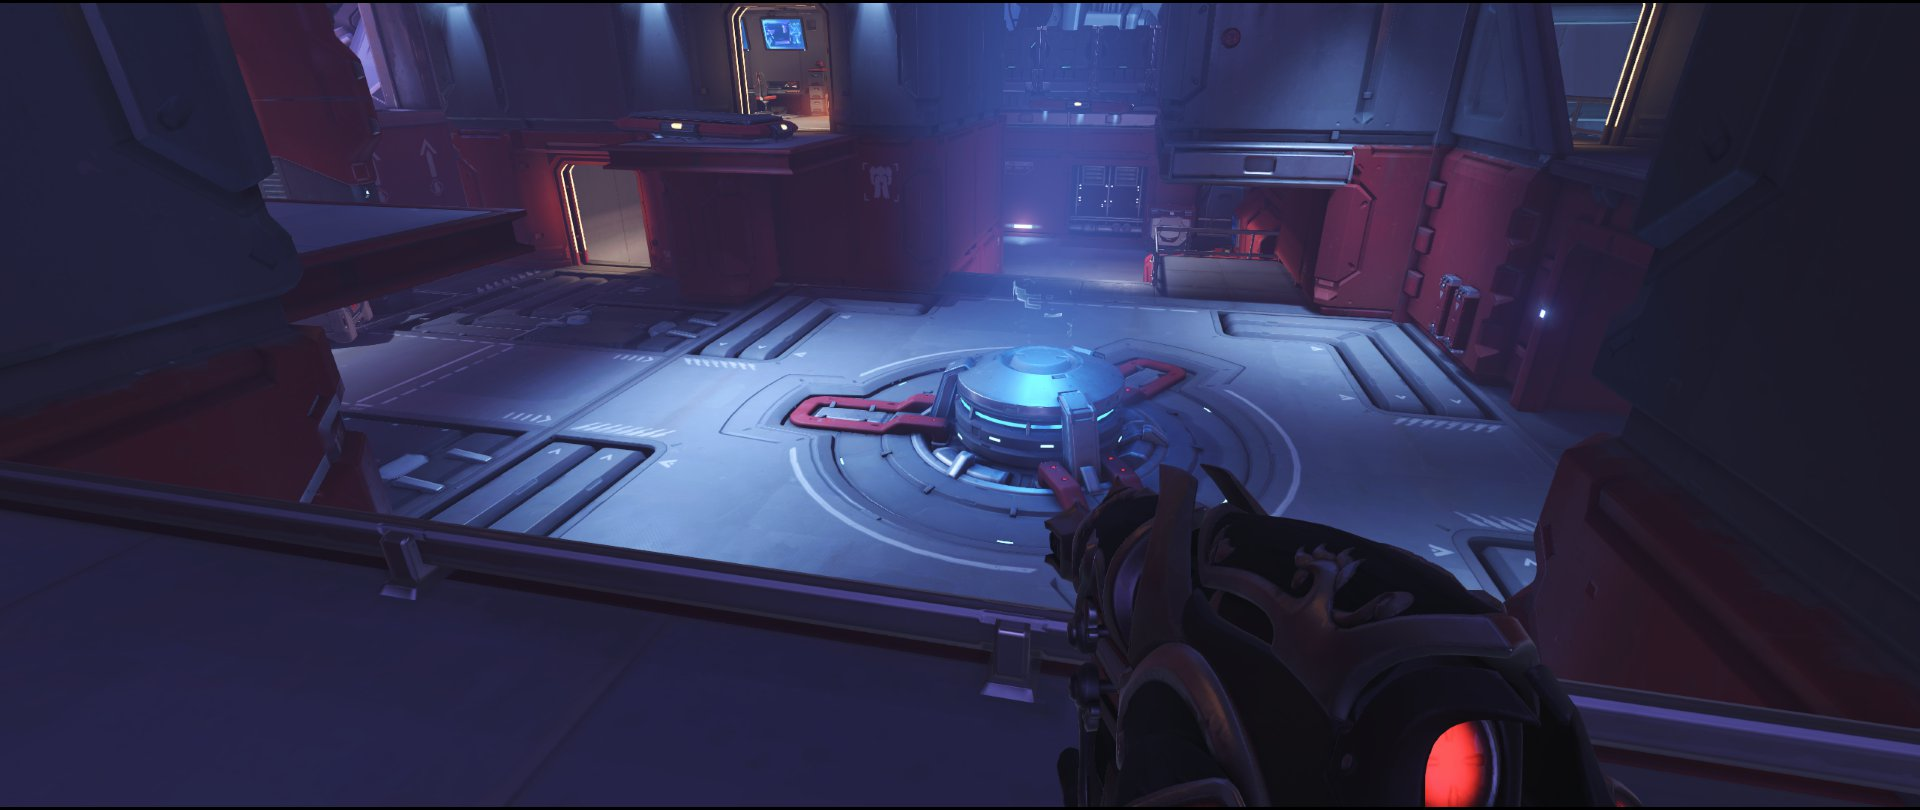 Left side high ground bridge defense sniping spot Widowmaker Volskaya Industries Overwatch.jpg